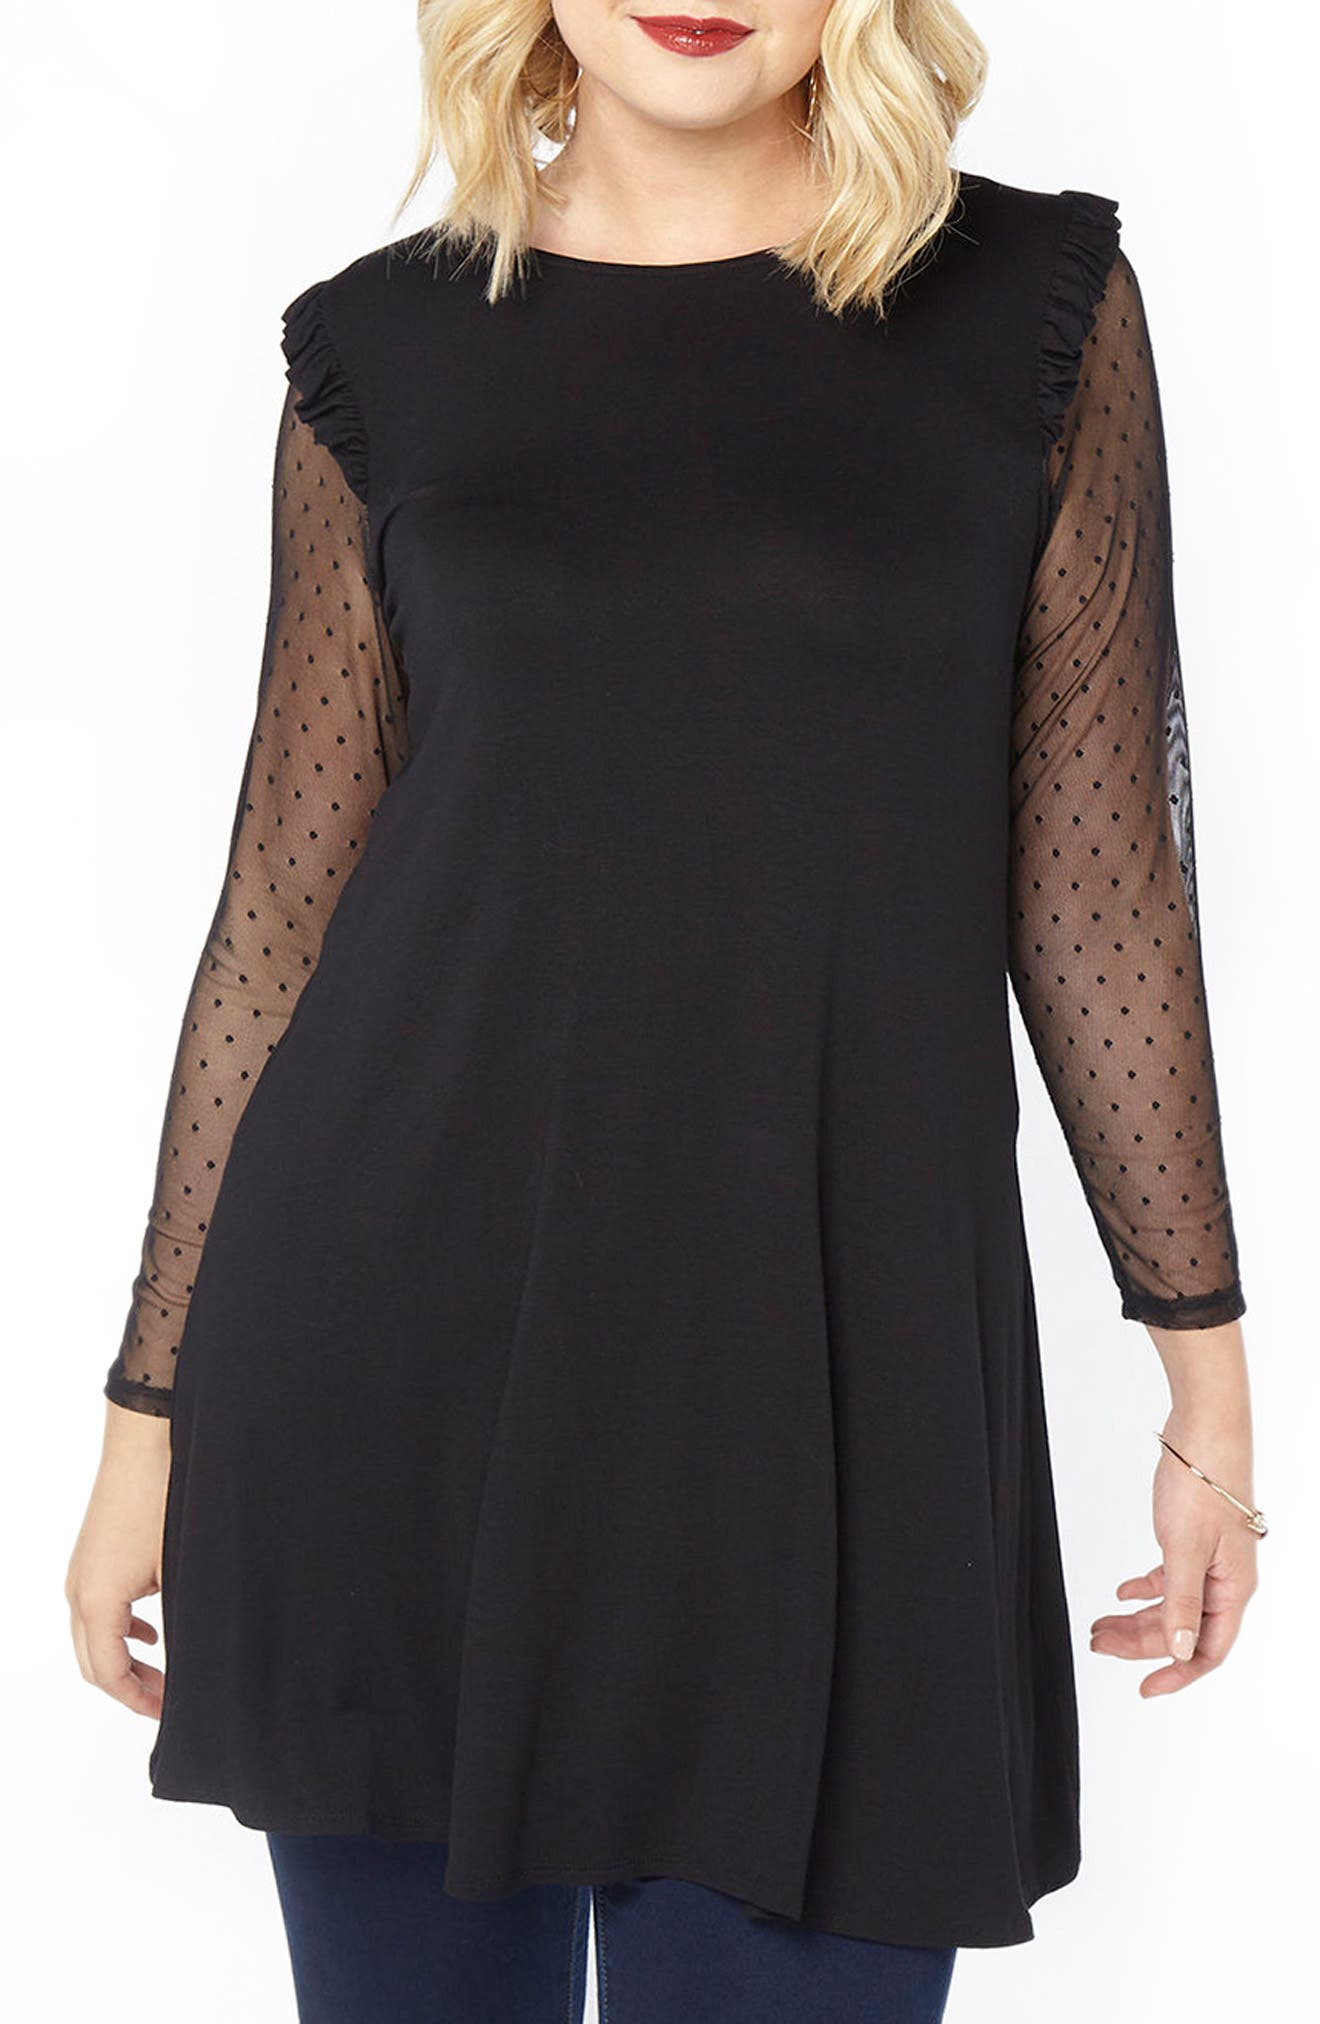 Alternate Image 1 Selected - Evans Mesh Sleeve Tunic (Plus Size)